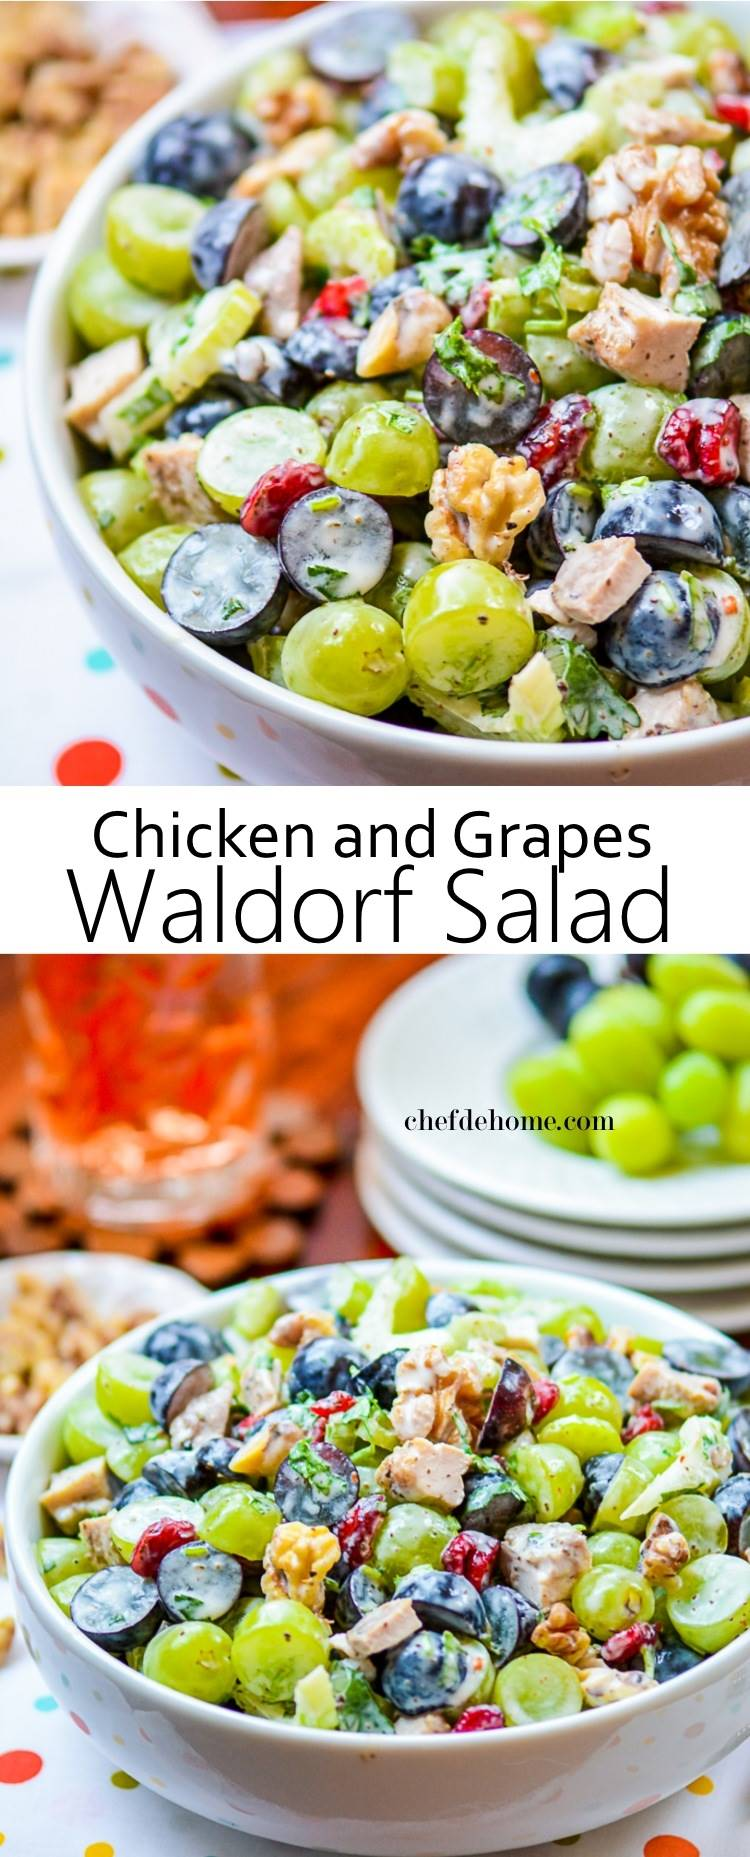 Lite and Fit Gluten Free Chicken Waldorf Salad | chefdehome.com